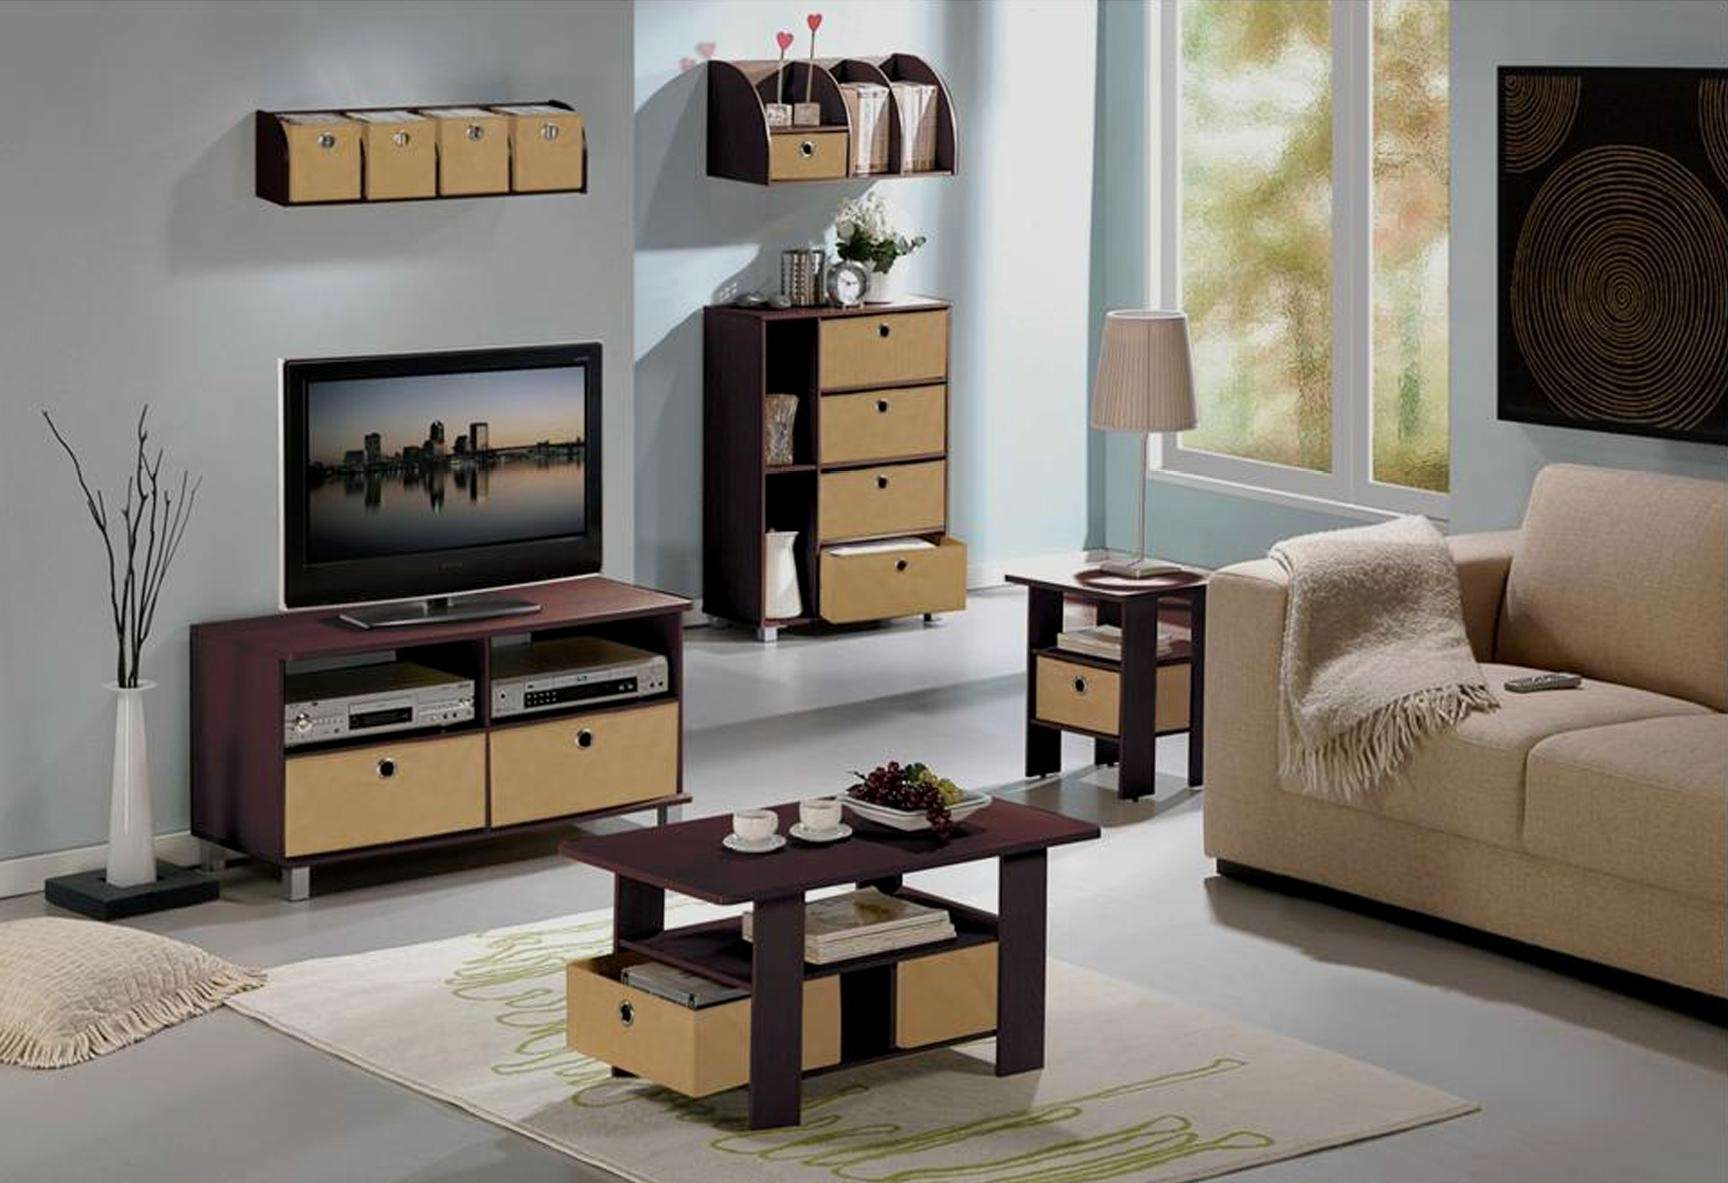 35 Best Of Coffee Table And Tv Stand Set – Home Furniture Ideas With Regard To 2018 Coffee Table And Tv Unit Sets (View 2 of 20)